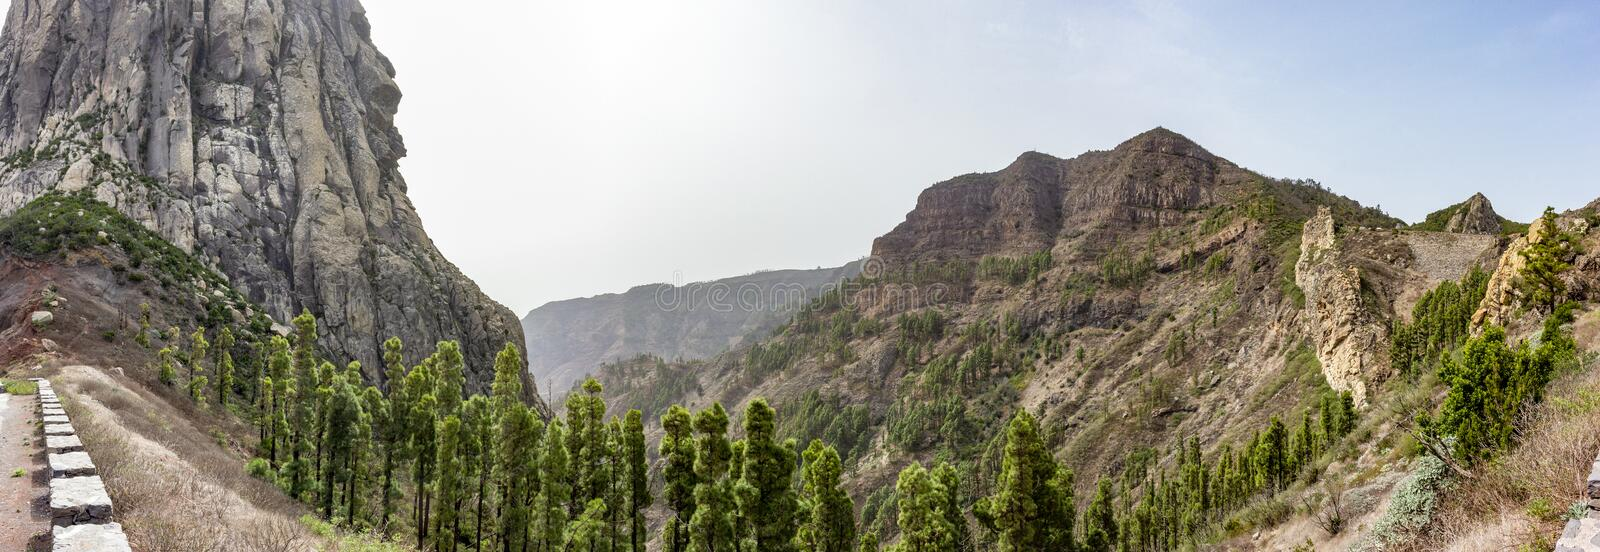 Panorama picture of the volcanic area at Los Roques on La Gomera Island near Tenerife, Spain royalty free stock photo